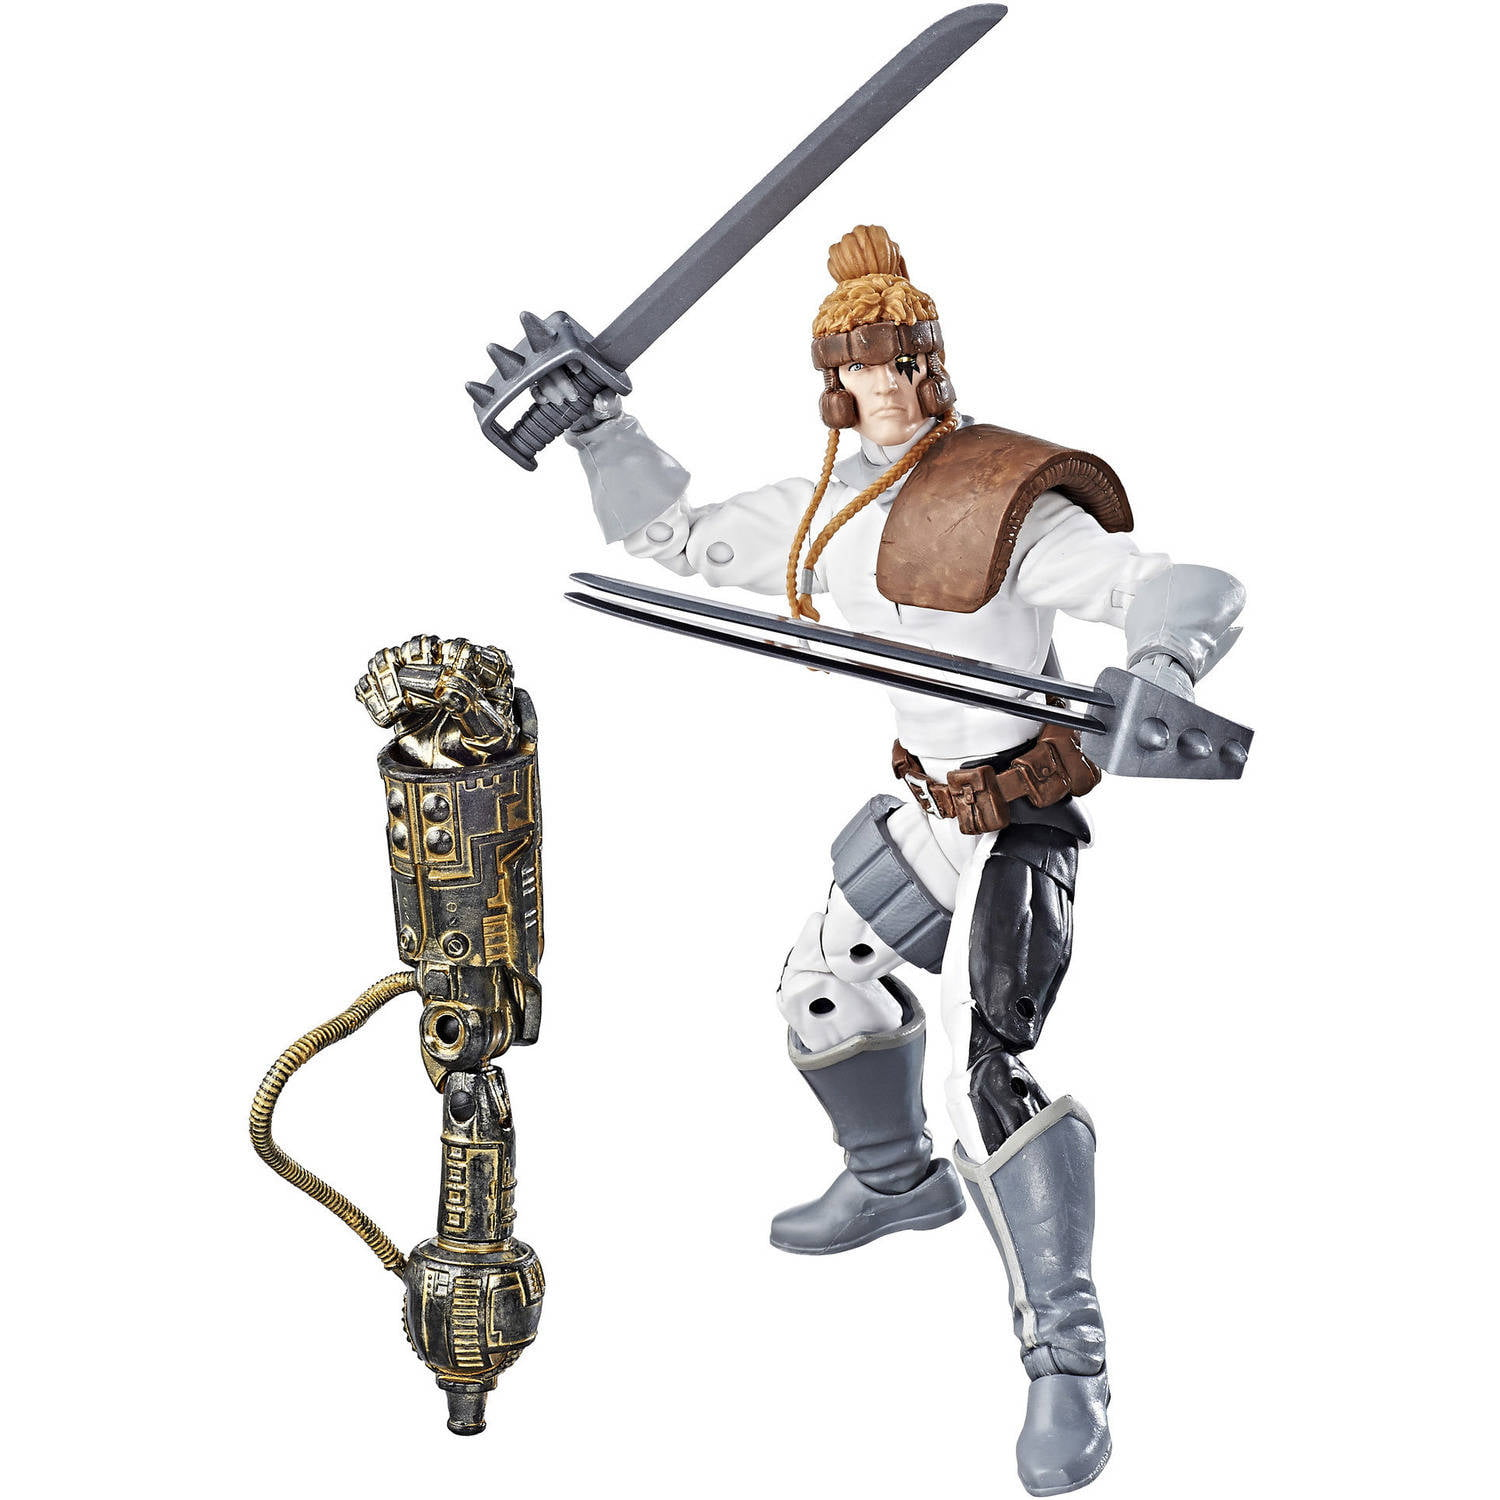 Marvel X-Men 6-Inch Legends Series Shatterstar by Hasbro